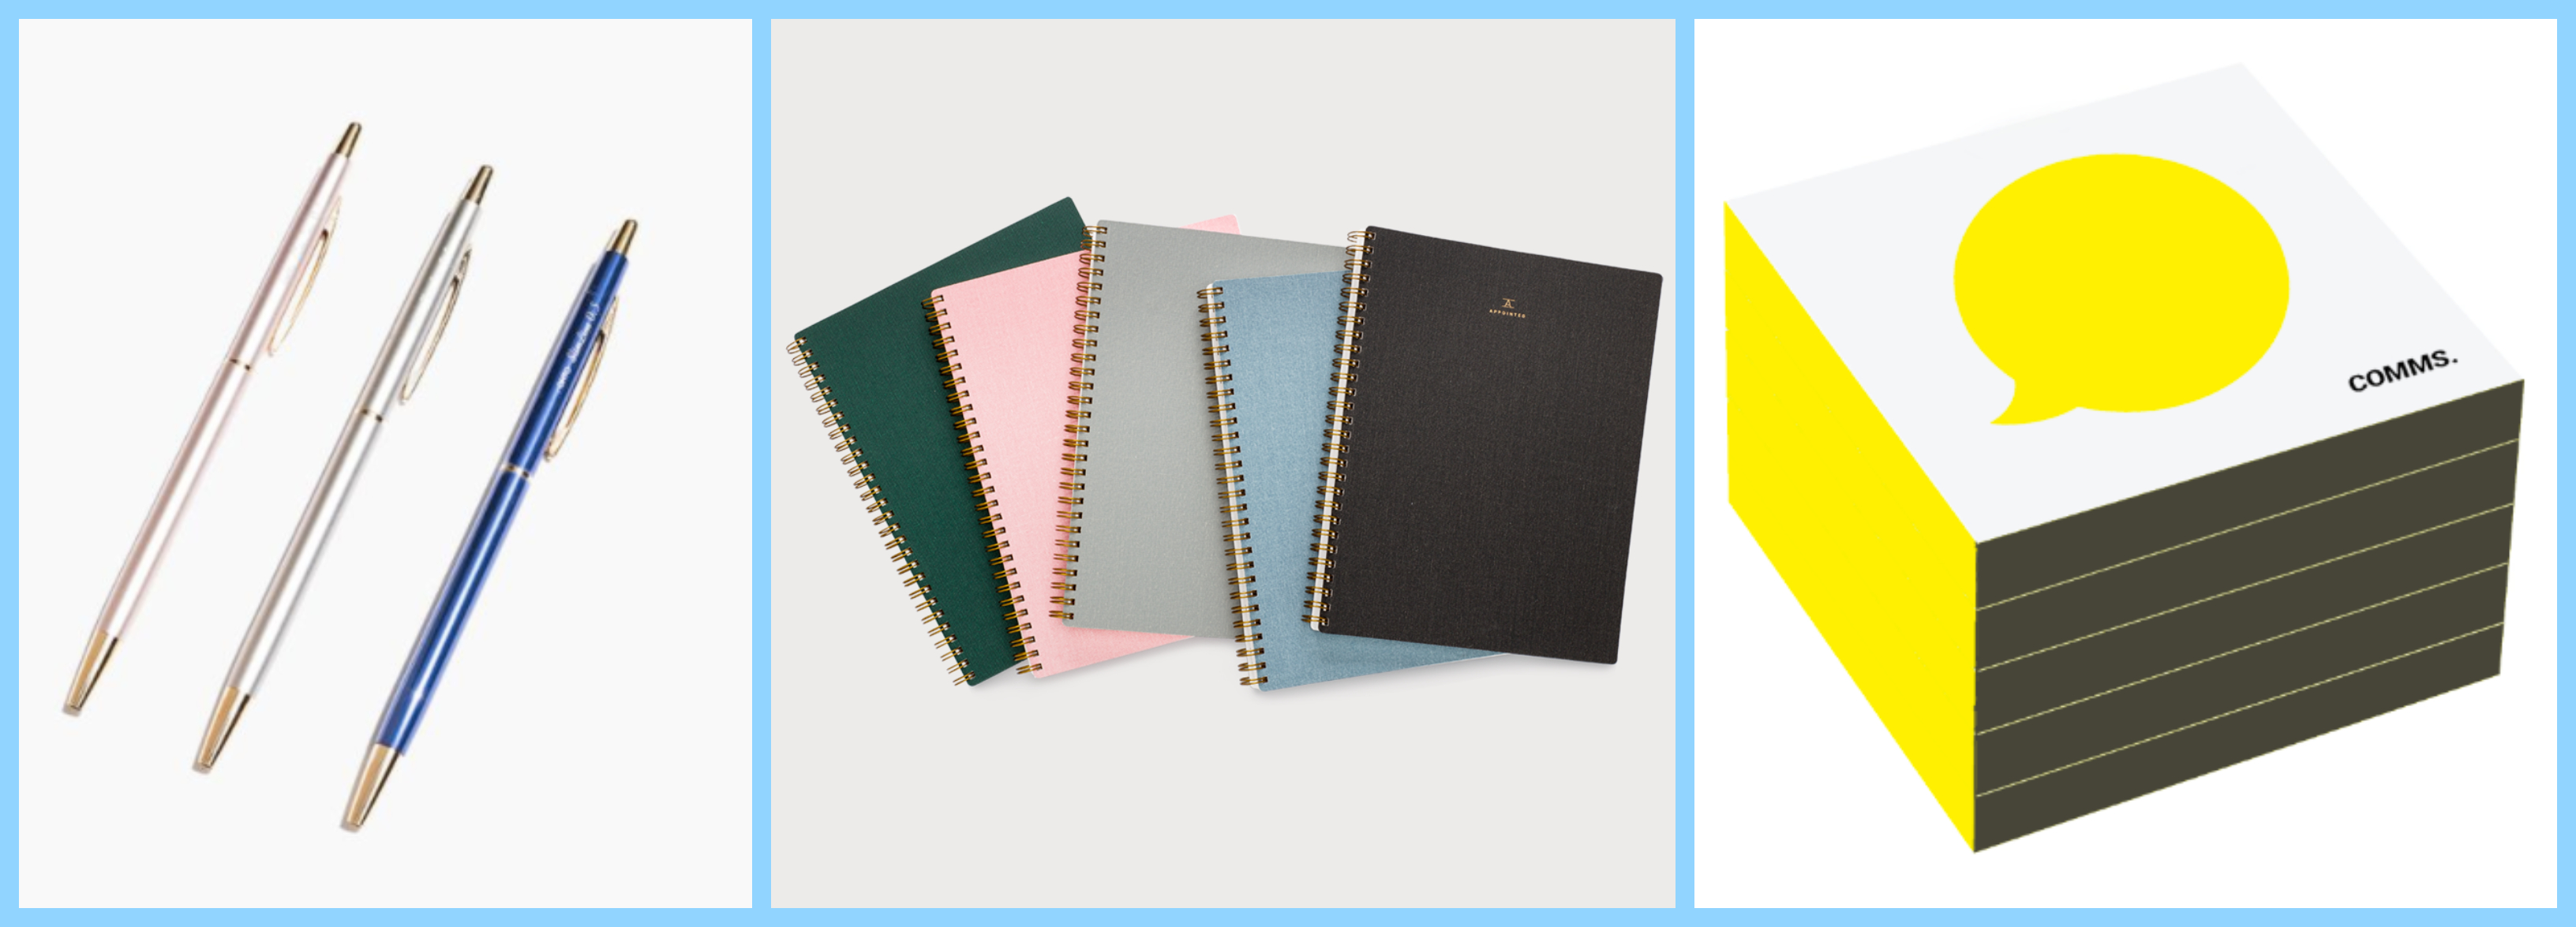 Stationery essentials: Pens/pencils, notebooks, post-its